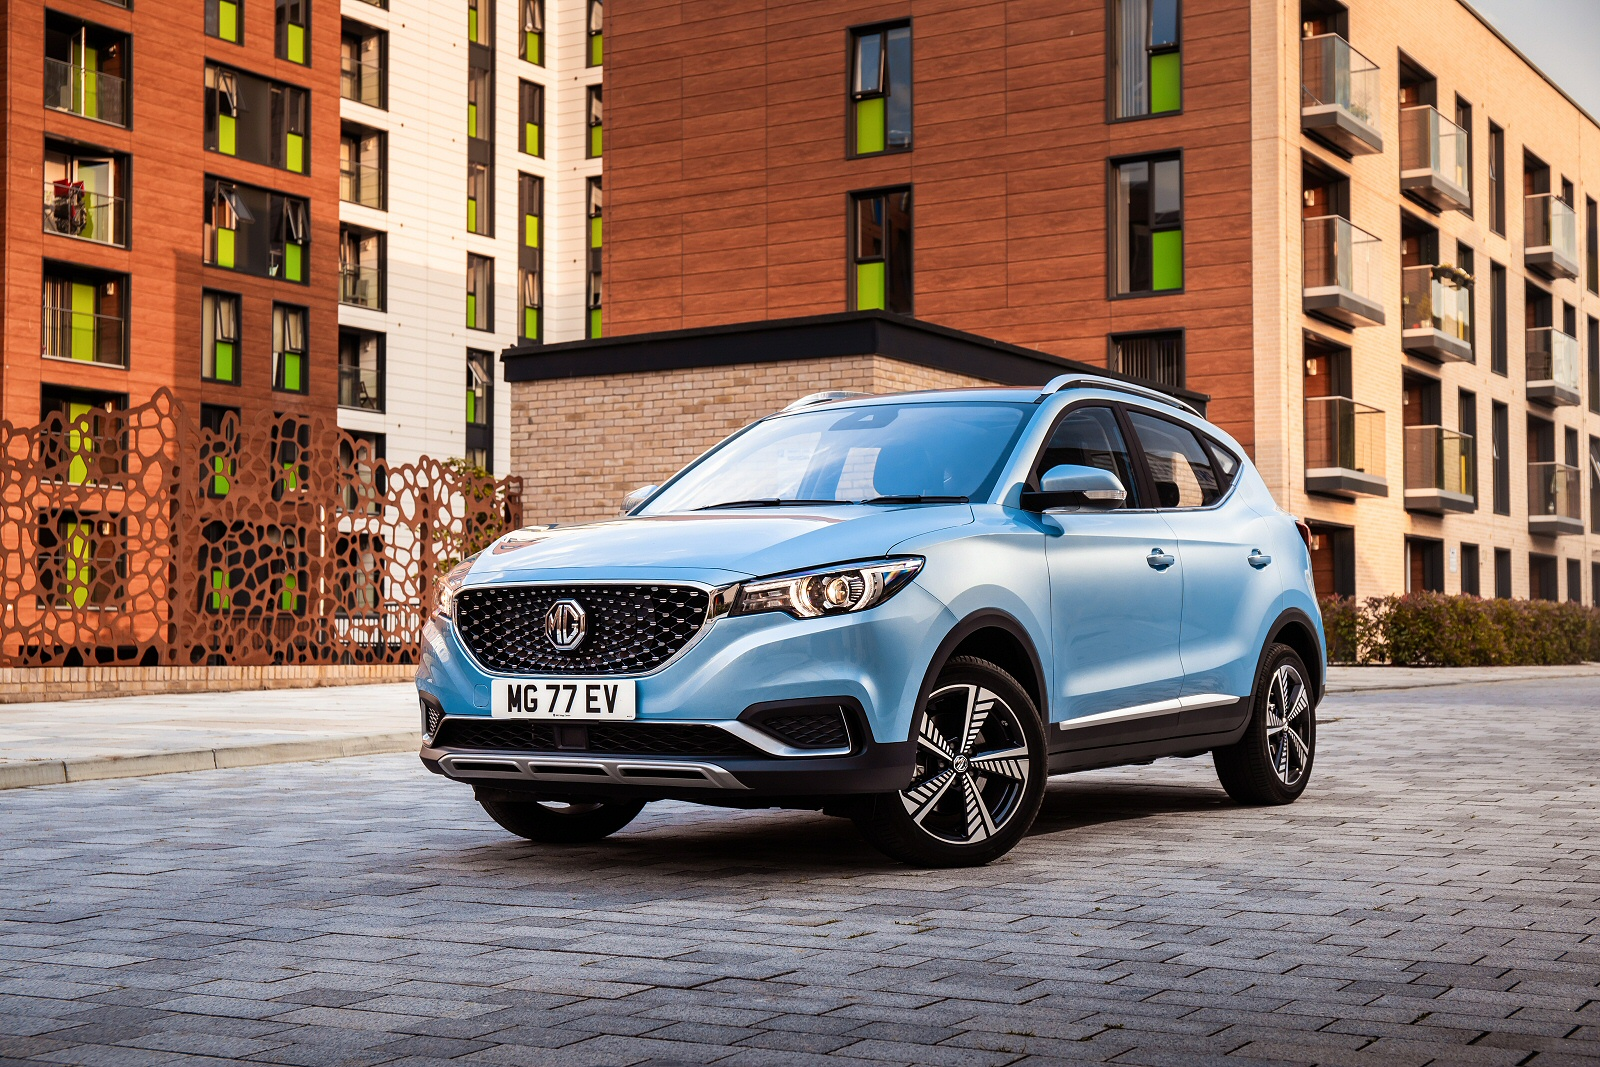 MG MOTOR UK ZS ELECTRIC HATCHBACK 105kW Exclusive EV 45kWh 5dr Auto